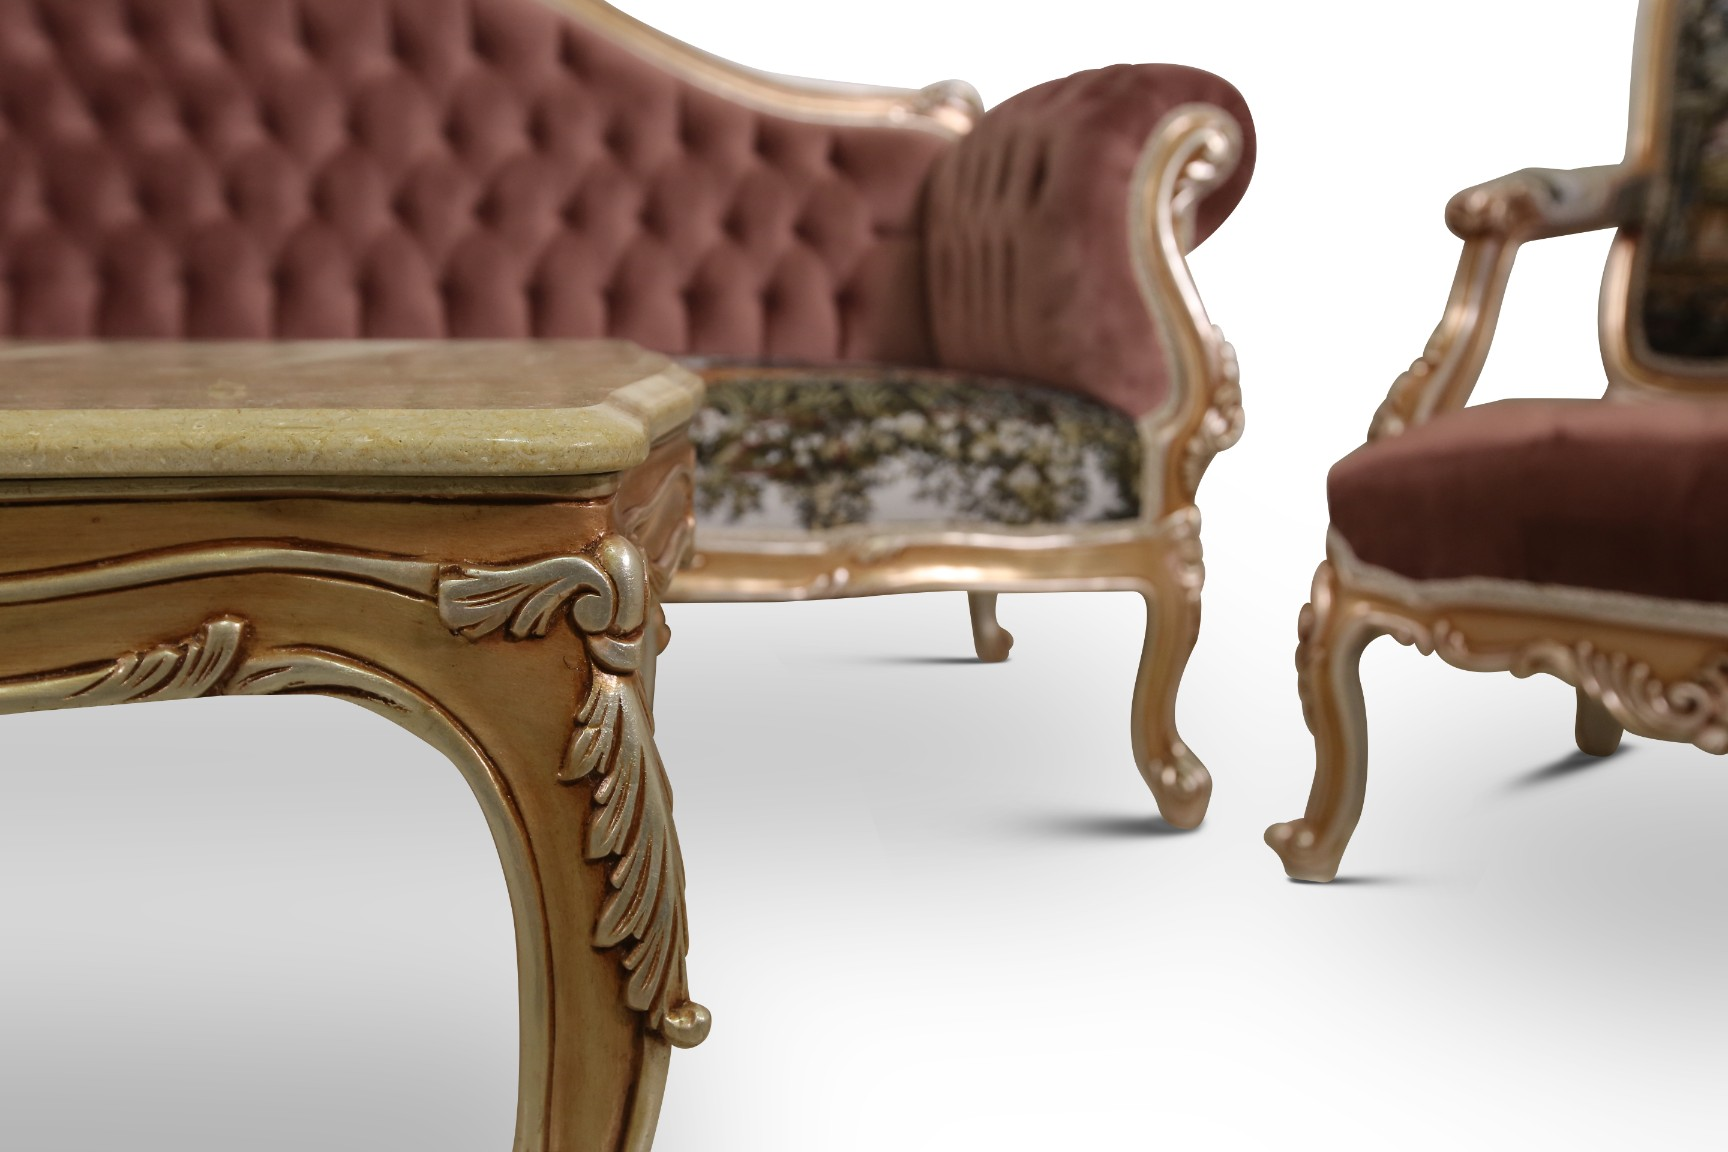 Made To Order / Althaea Frutex, Louis XV Style, silver Leaf, French Pictorial Toile , Tufted velvet, Living Room Set